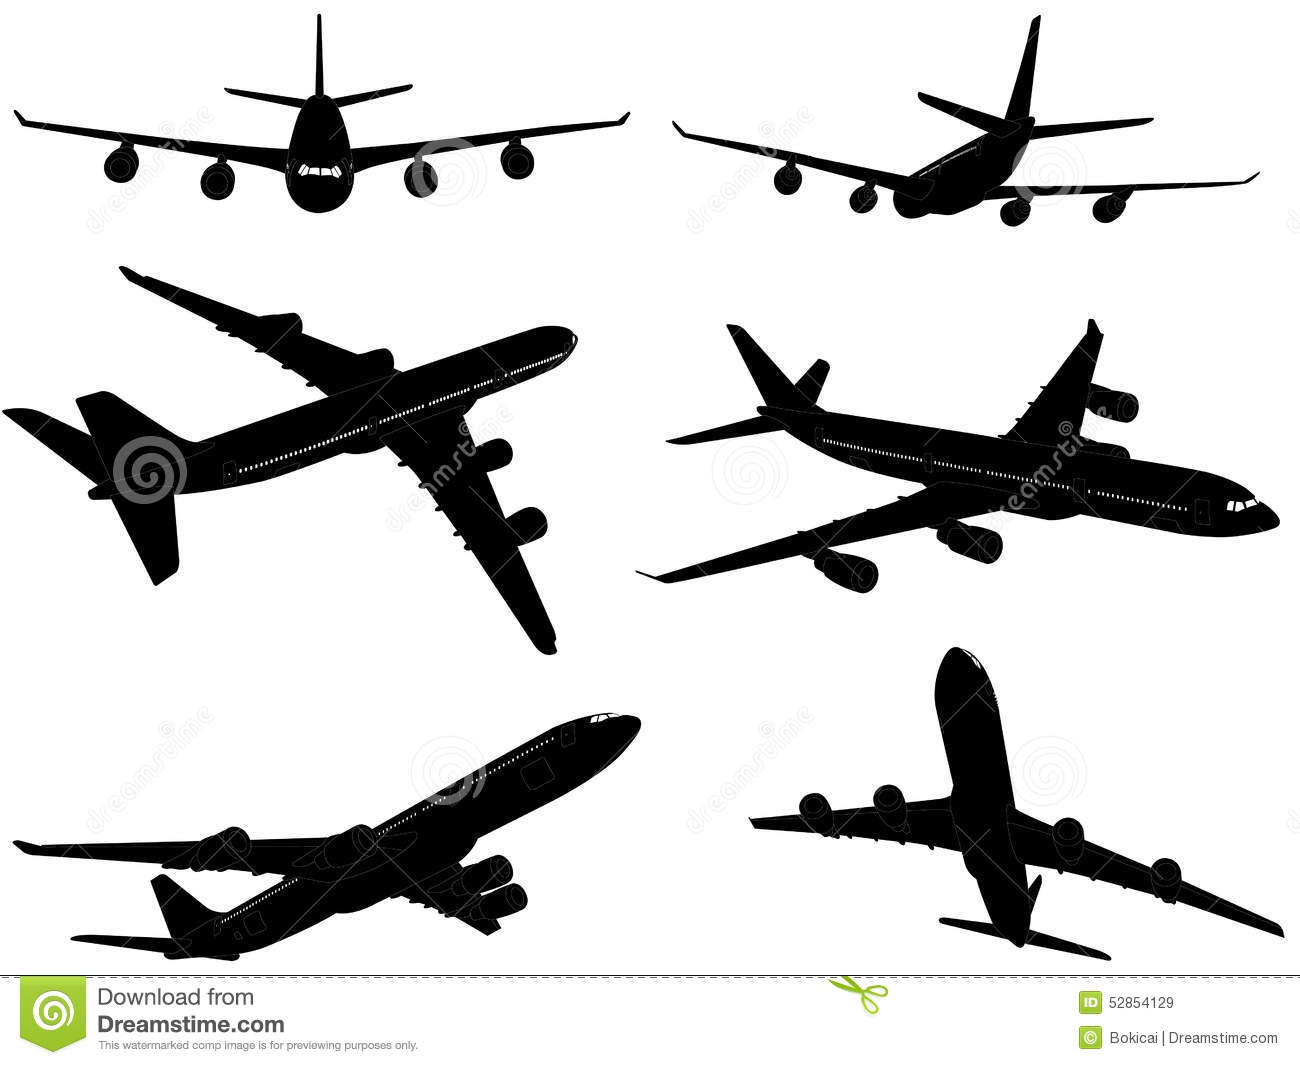 Big commercial airplanes silhouettes